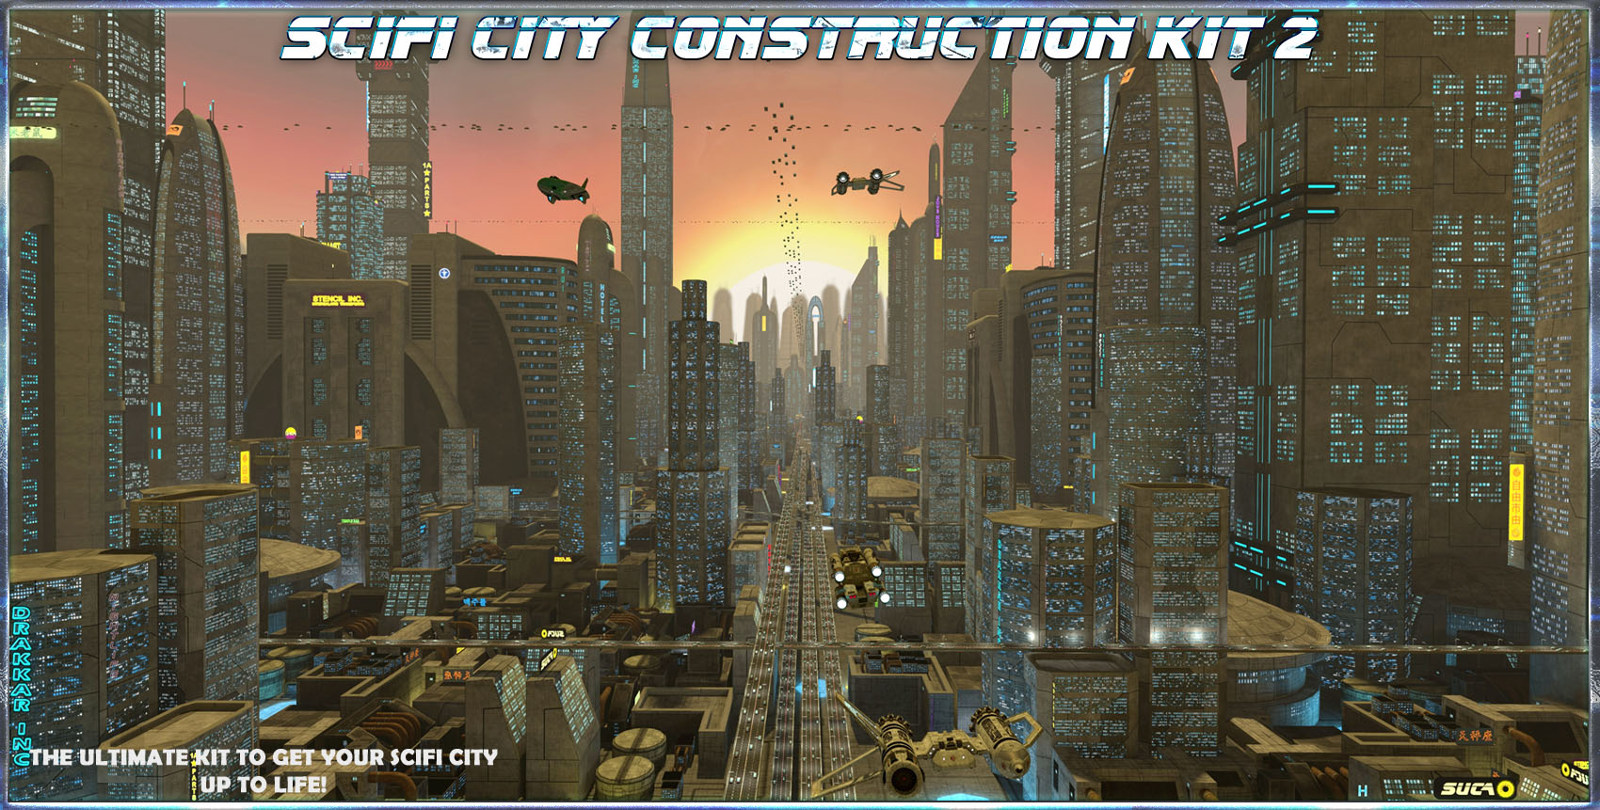 SciFi City Construction Set 2 by 3-d-c